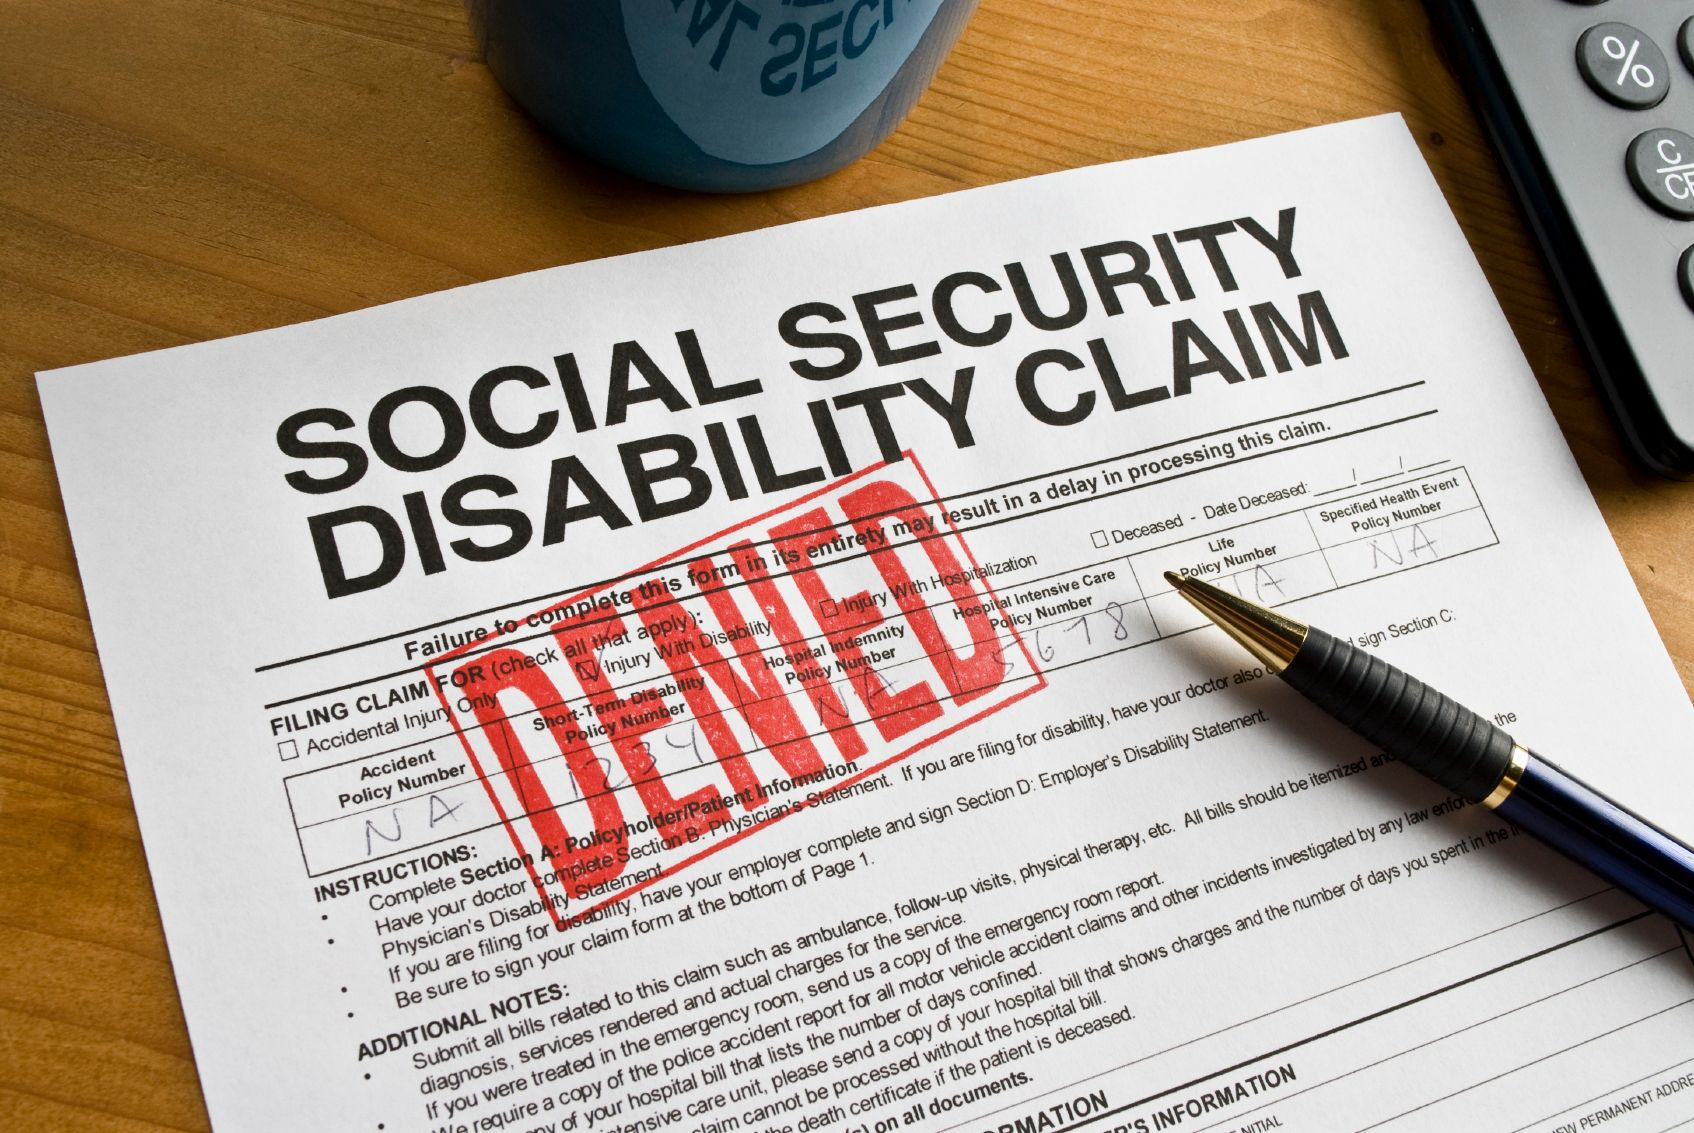 To Get Your Claim For Any Disability Hire Social Security